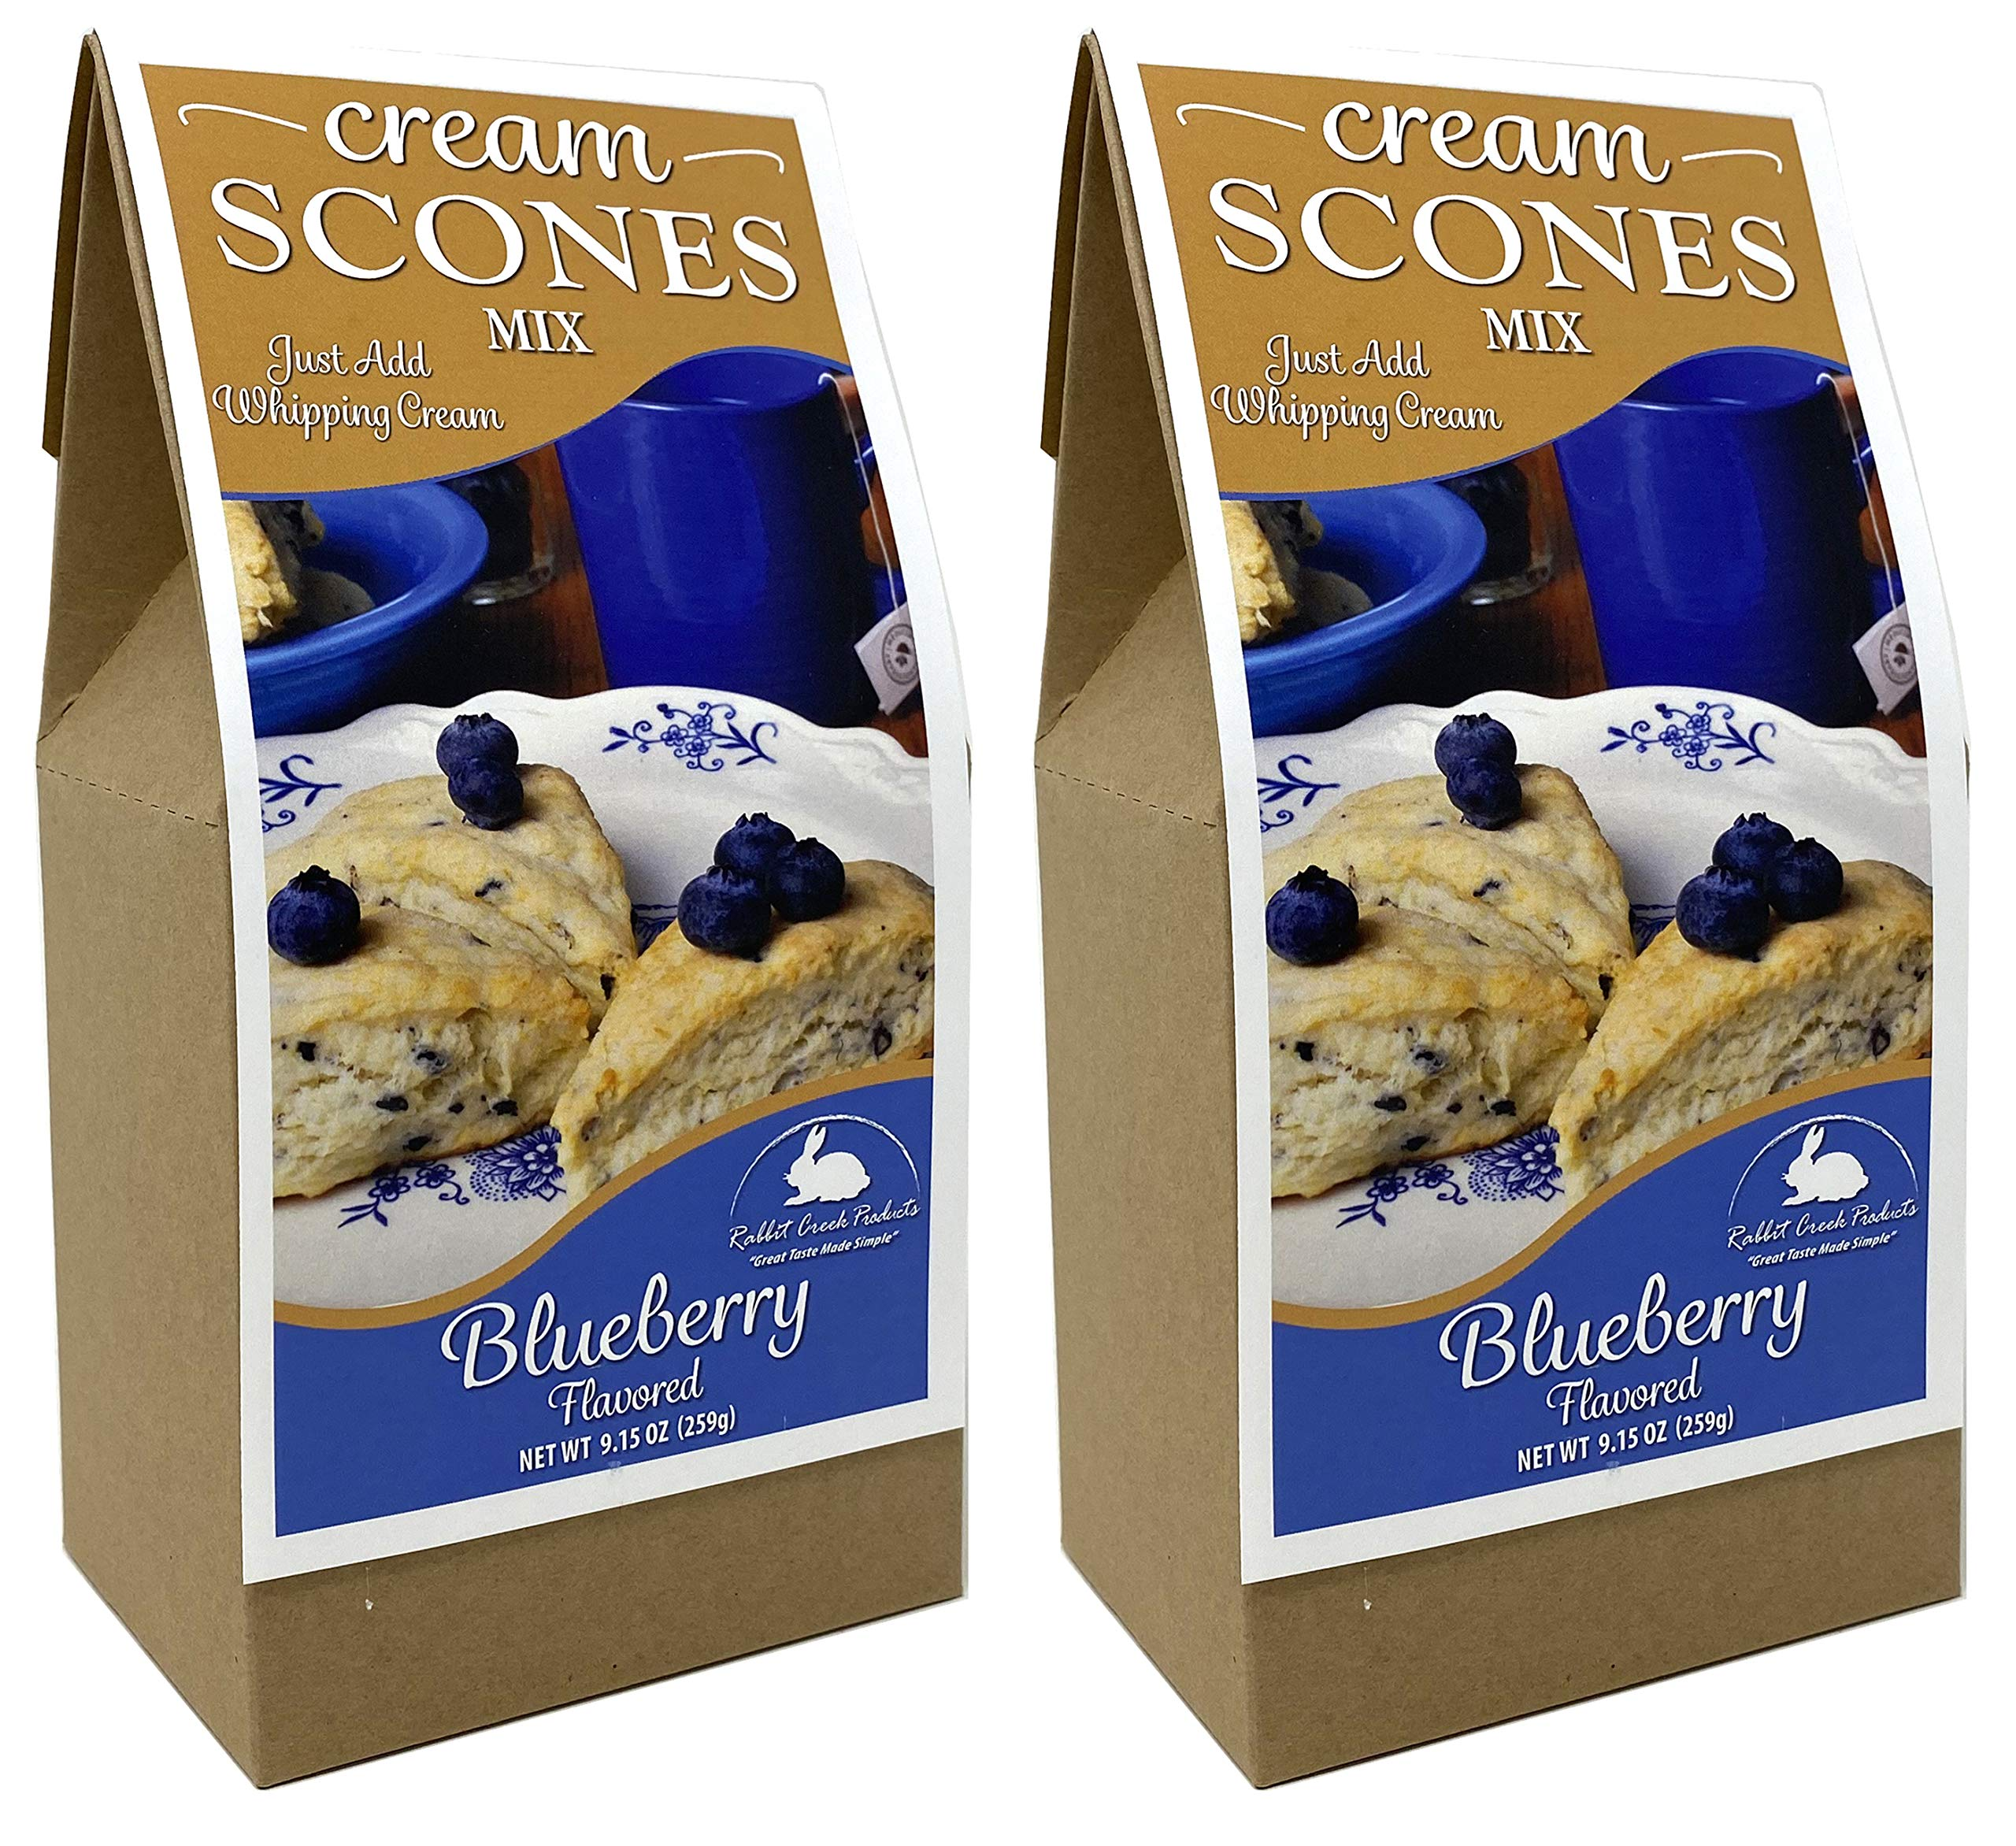 Rabbit Creek Blueberry Scones Pack of 2 - Easy Gourmet Scone Baking Mix - Made in the USA